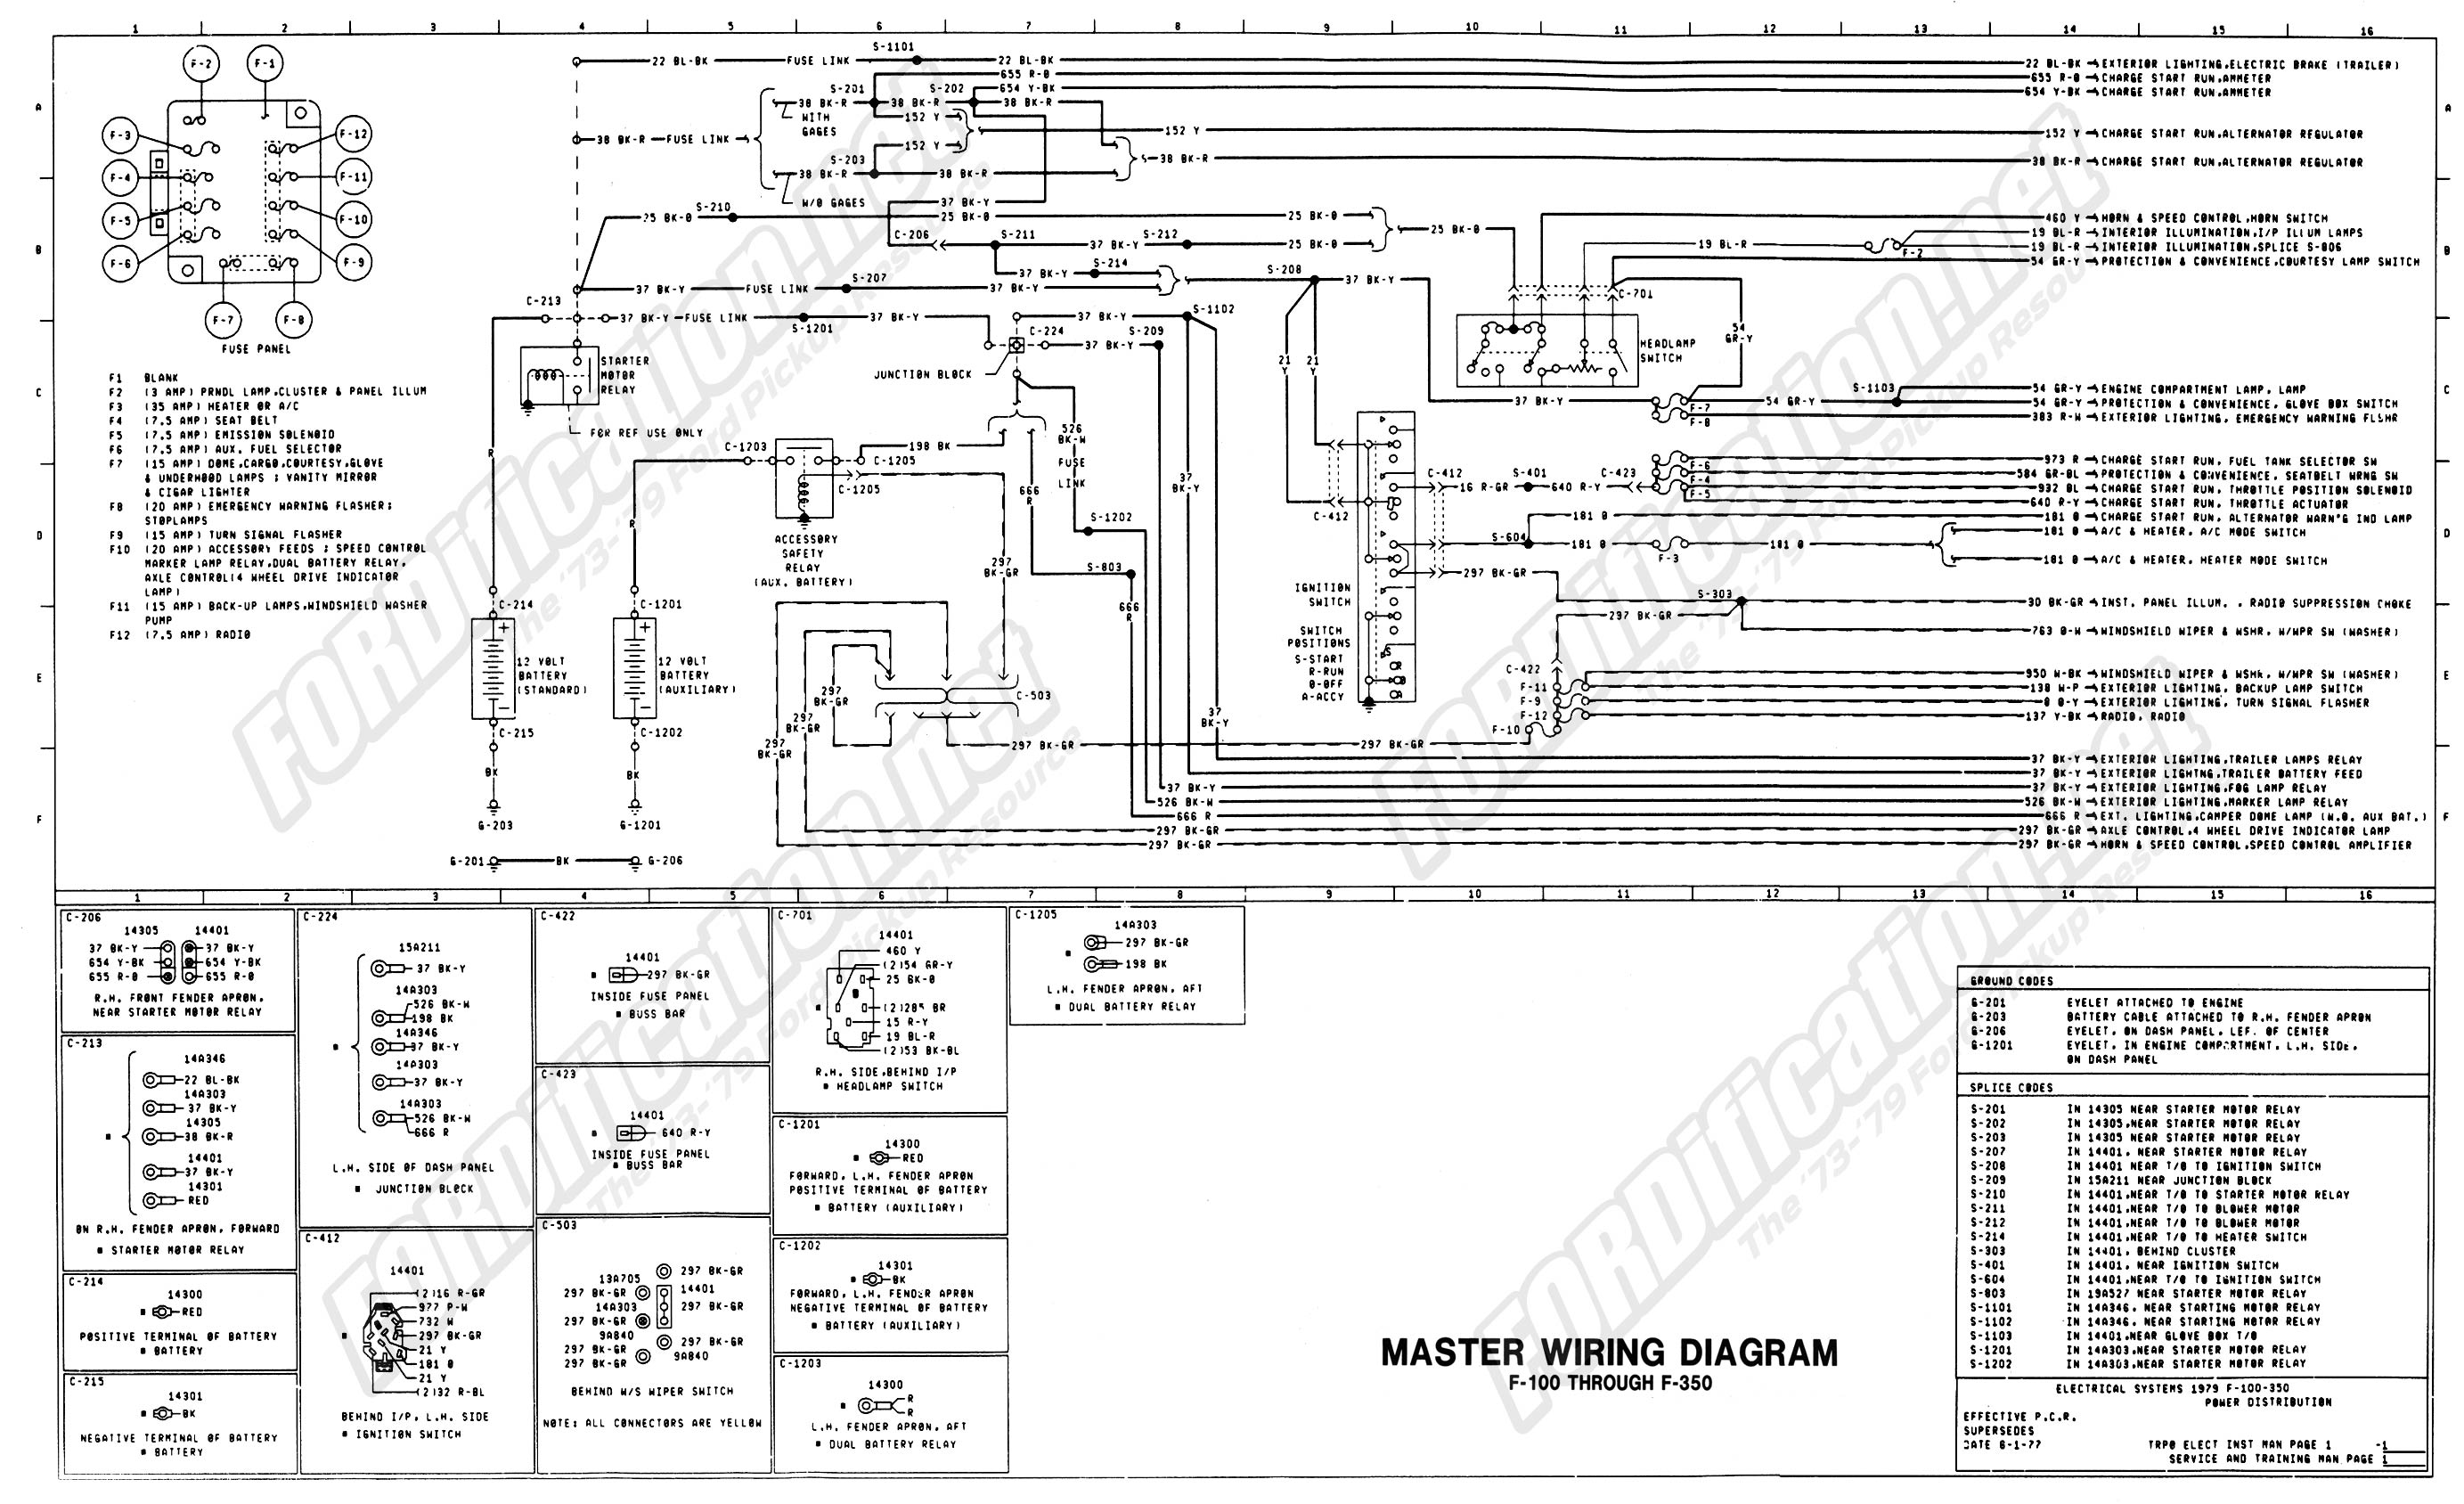 1976 Ford F 250 Ignition Wiring Diagram Wiring Diagram Frankmotors Es